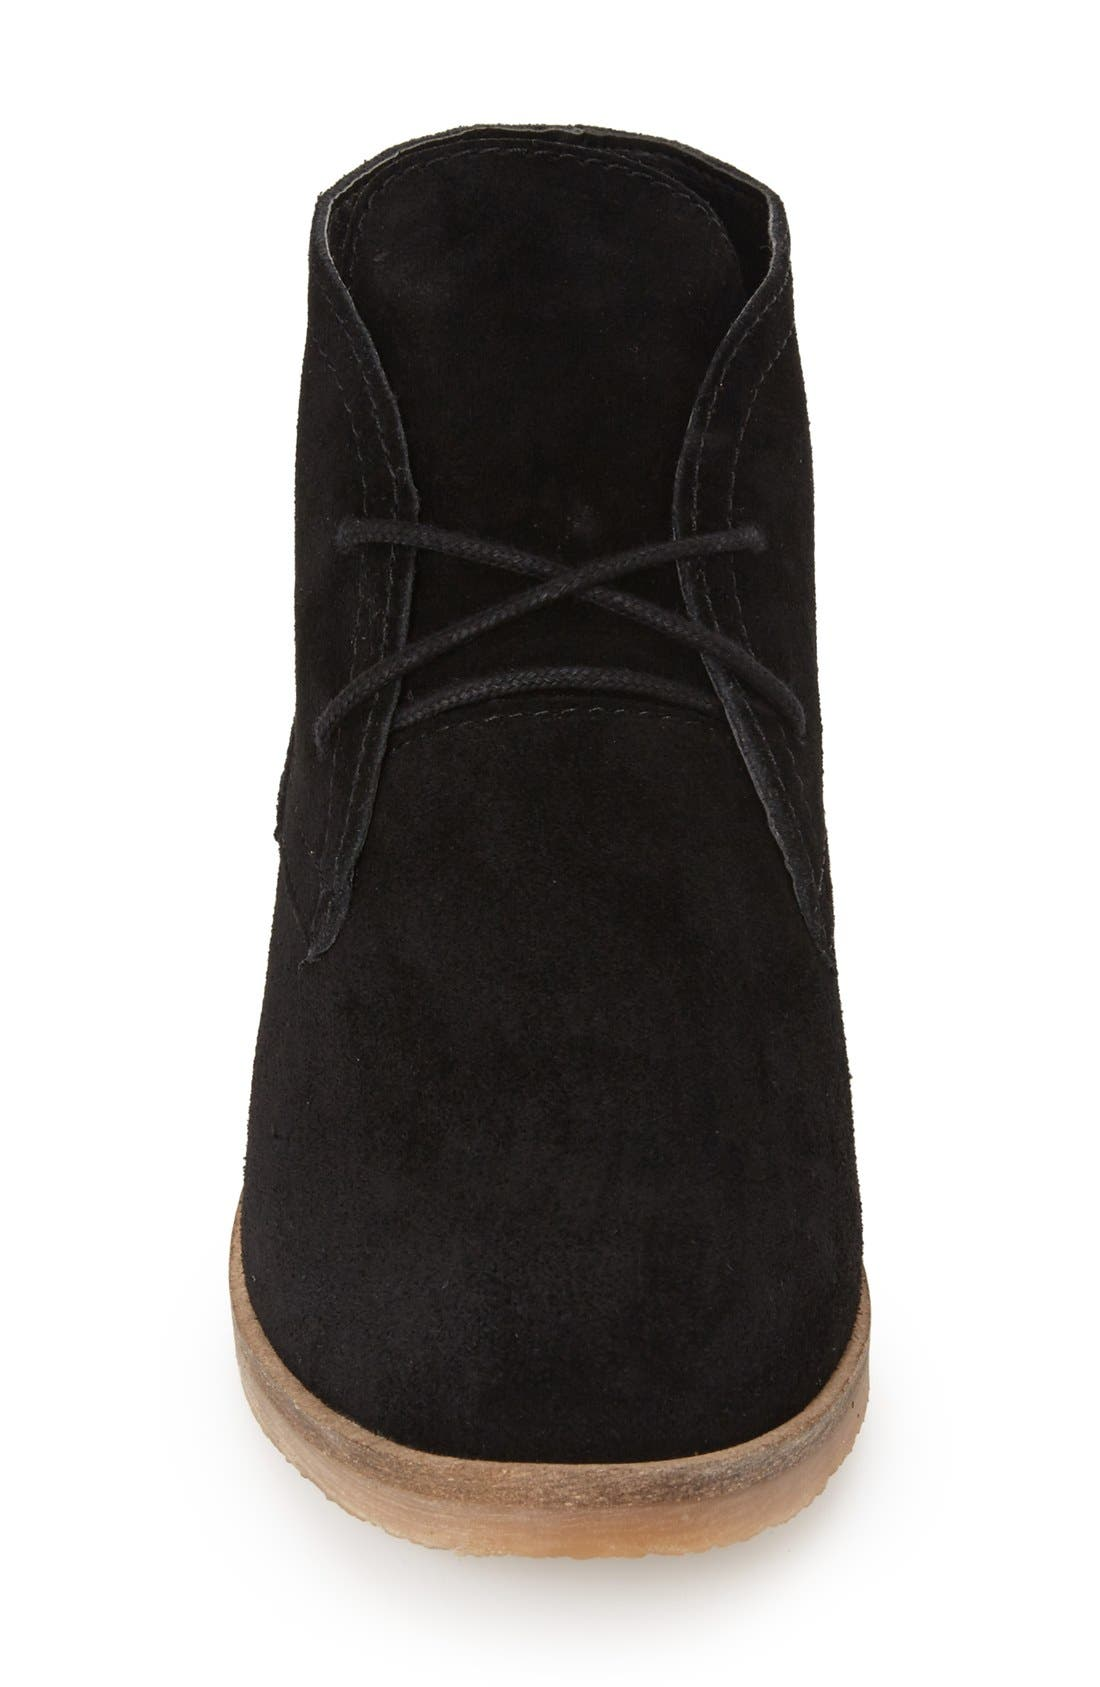 LuckyBrand'Garboh'Lace-UpBootie,                             Alternate thumbnail 4, color,                             001